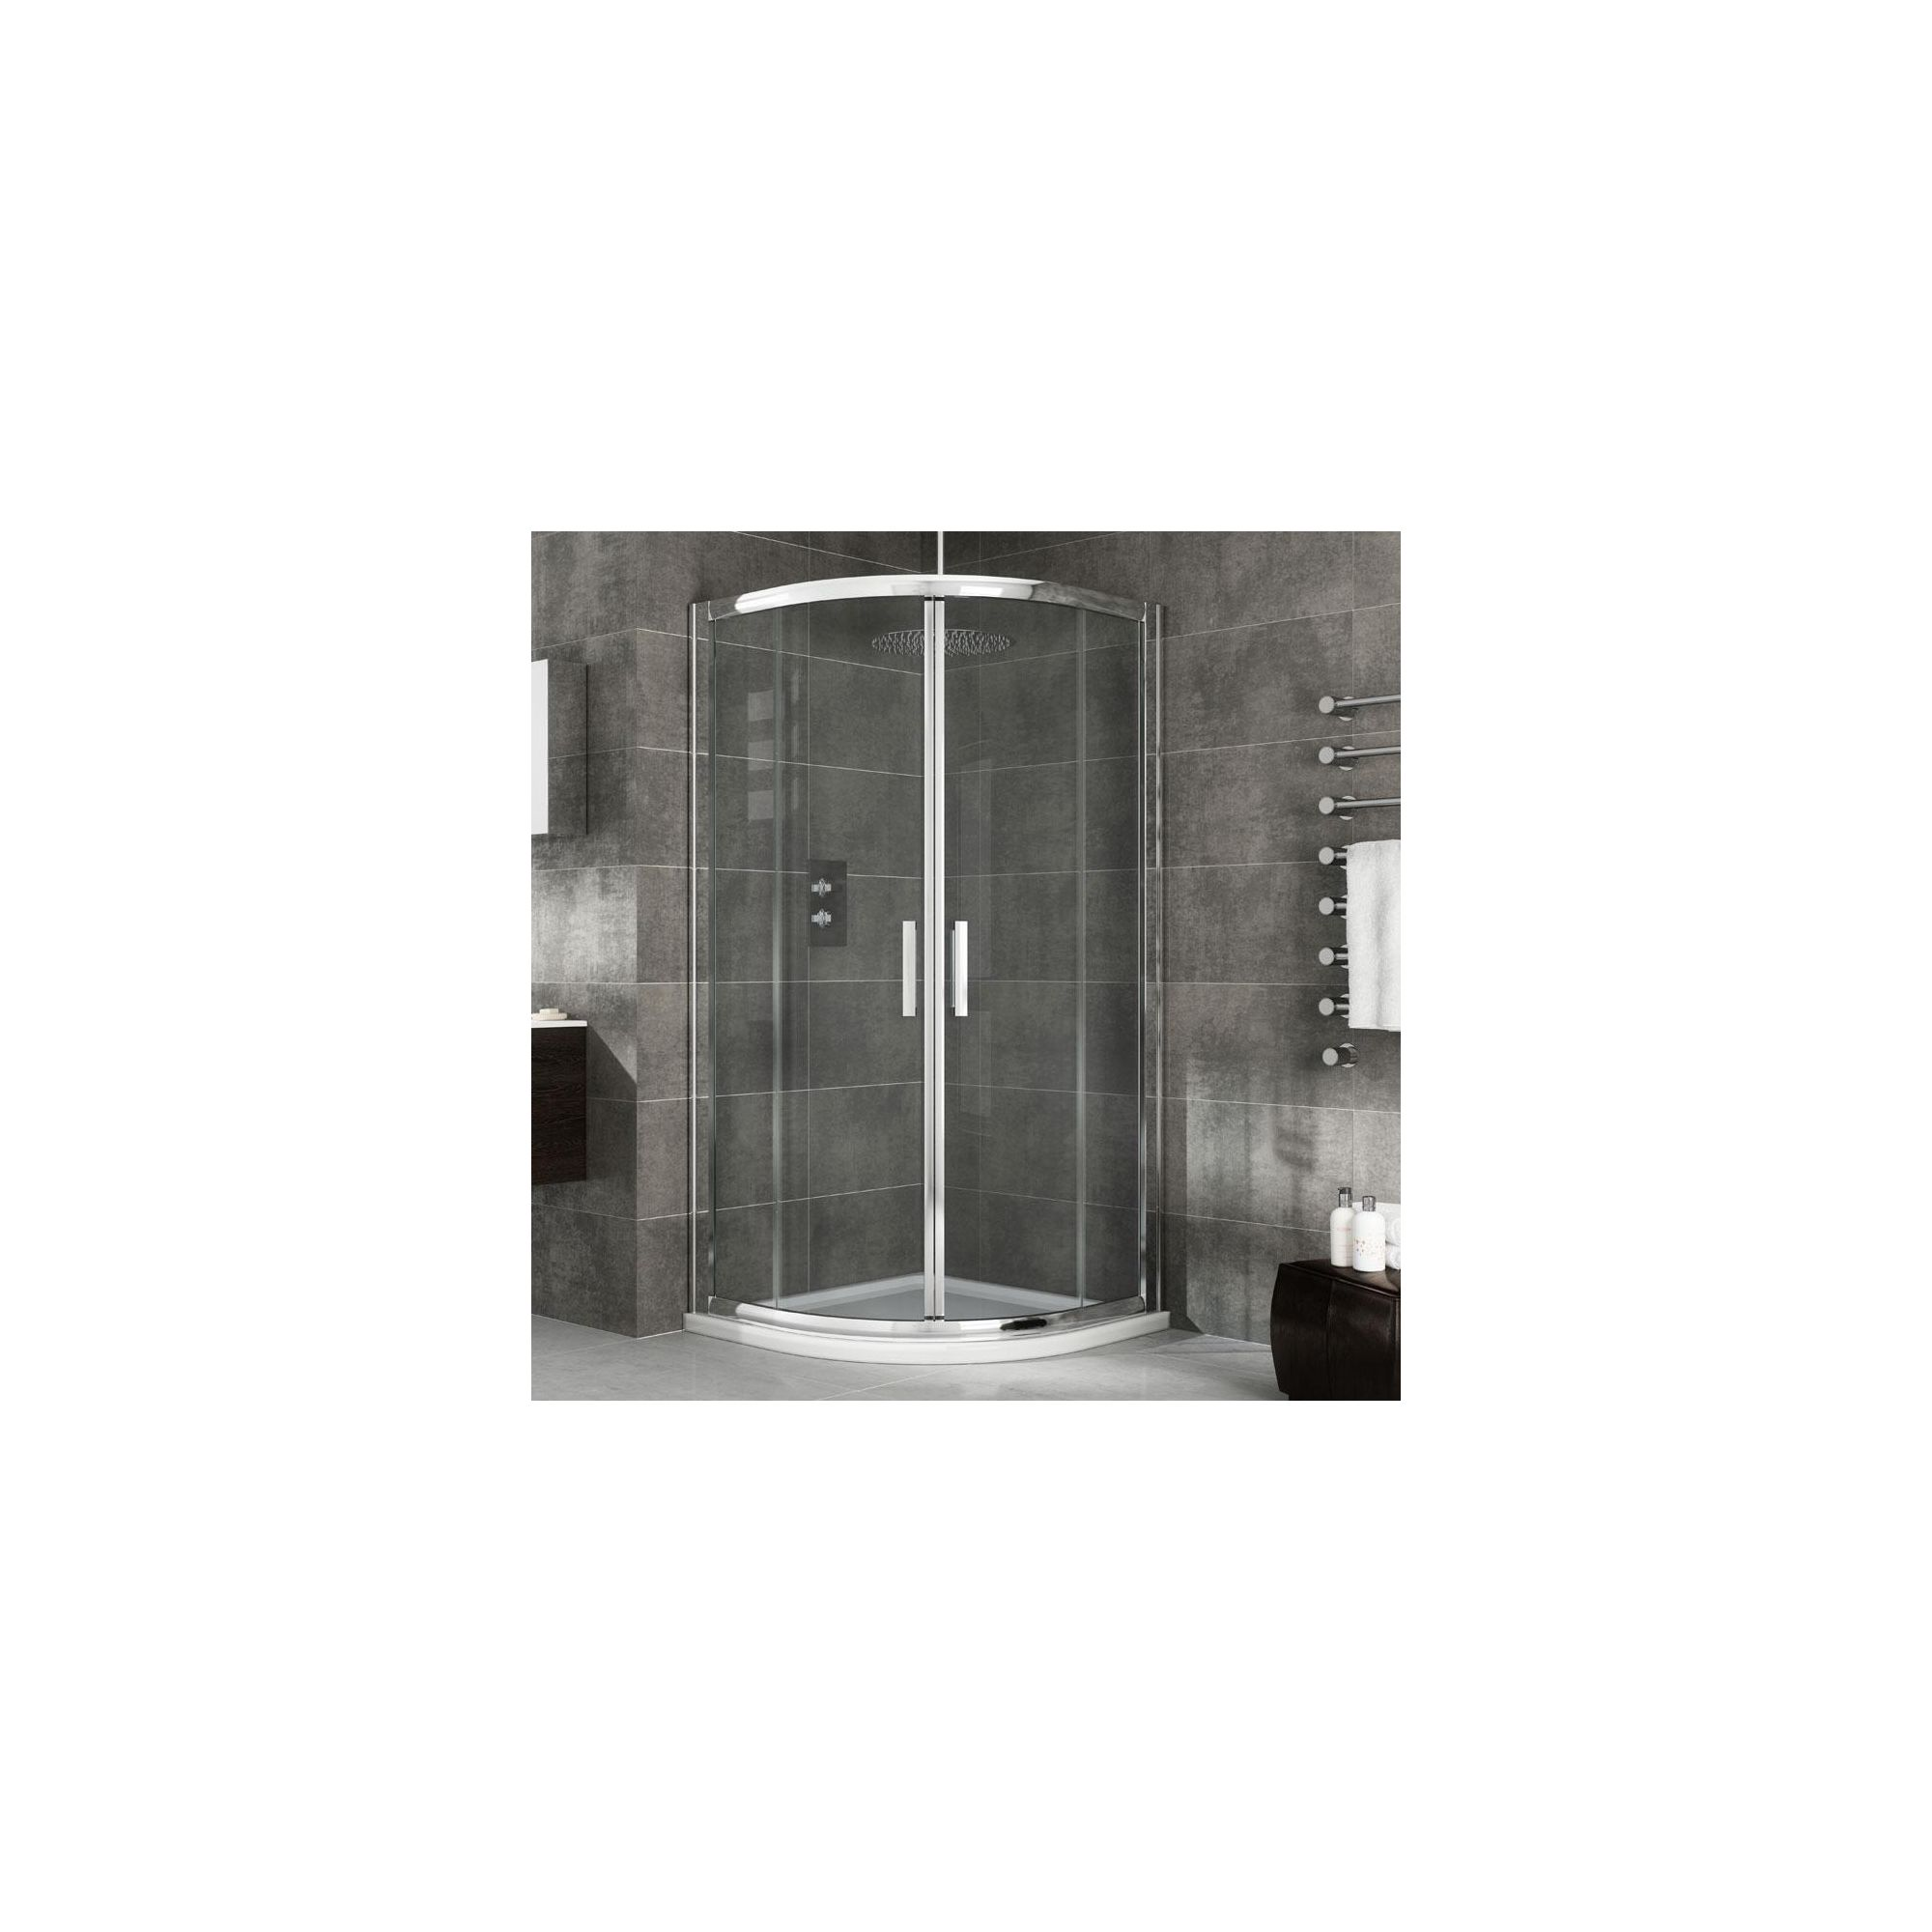 Elemis Eternity Two-Door Quadrant Shower Enclosure, 1000mm x 1000mm, 8mm Glass, Low Profile Tray at Tesco Direct